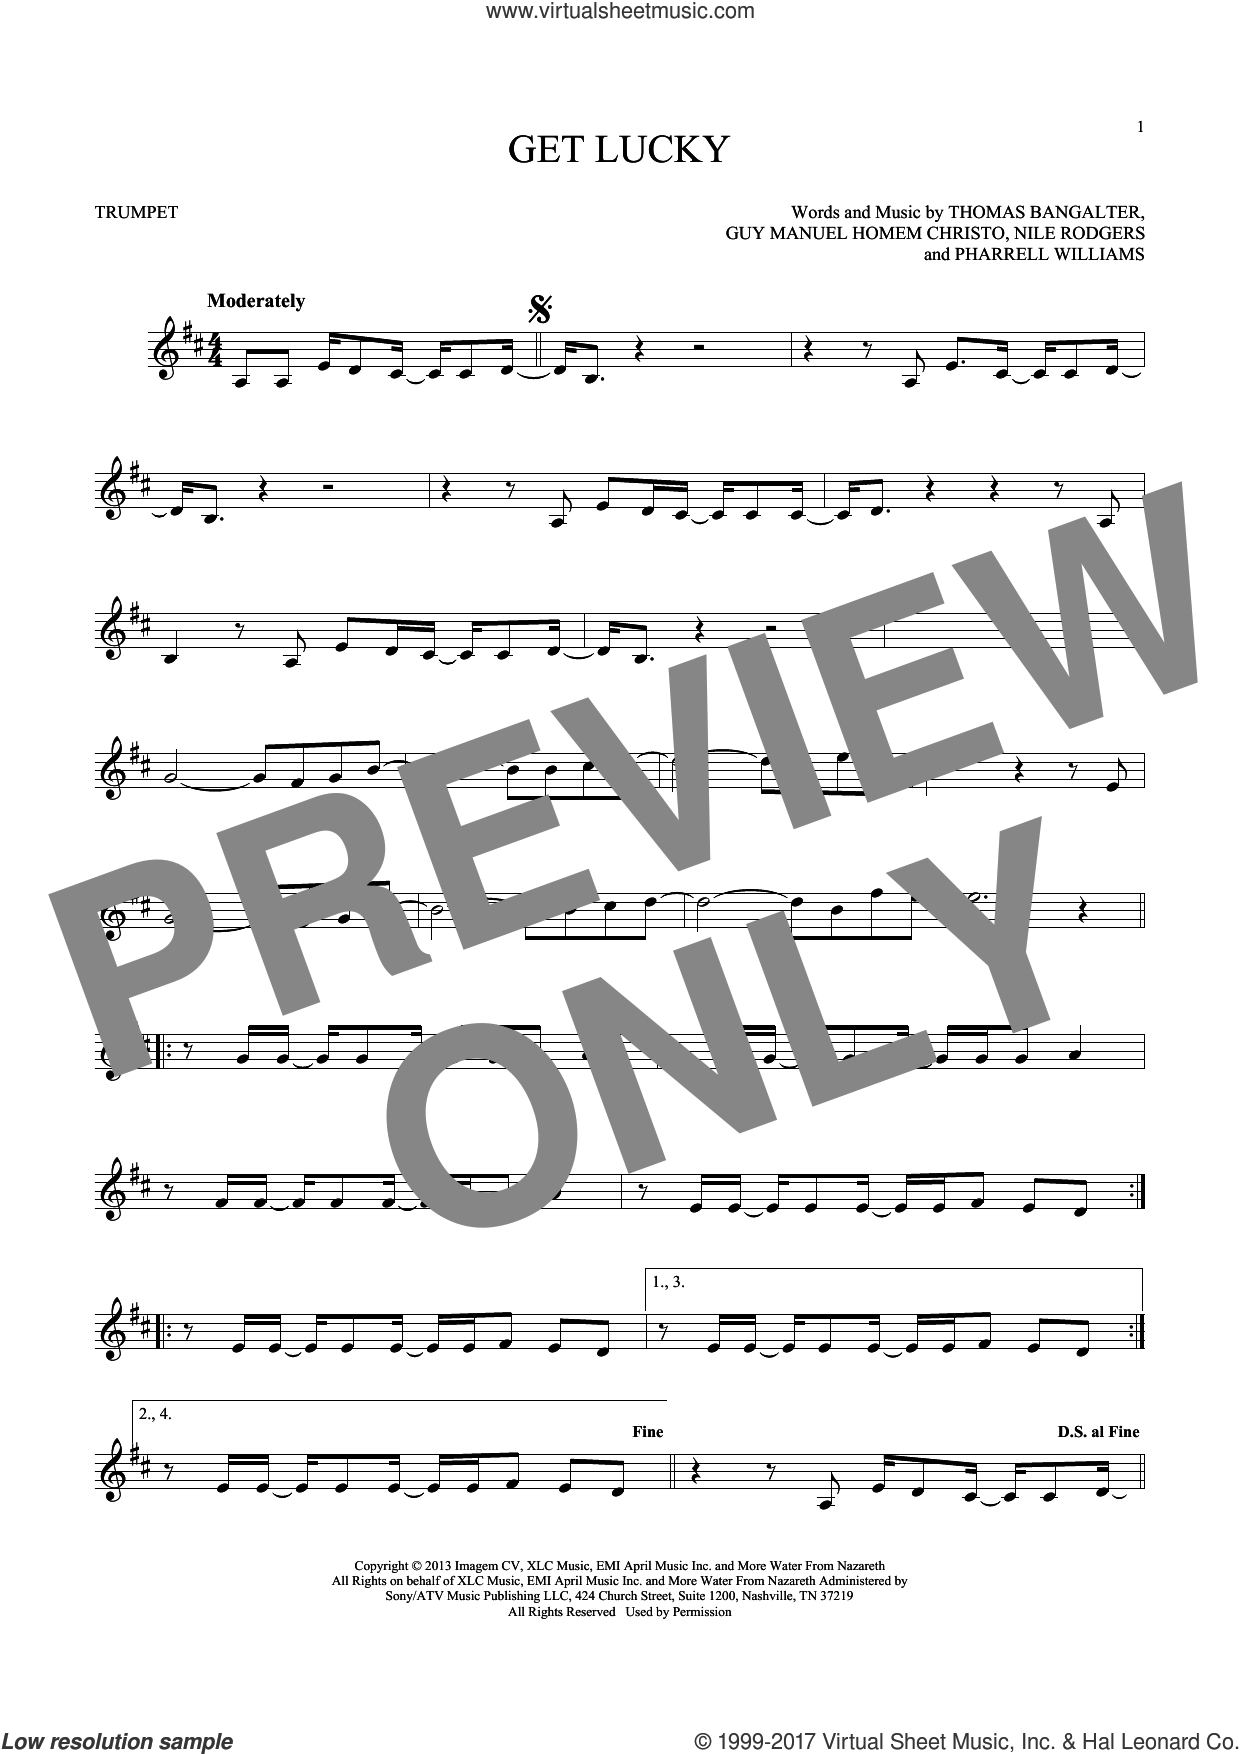 Get Lucky sheet music for trumpet solo by Thomas Bangalter, Daft Punk Featuring Pharrell Williams, Nile Rodgers and Pharrell Williams. Score Image Preview.